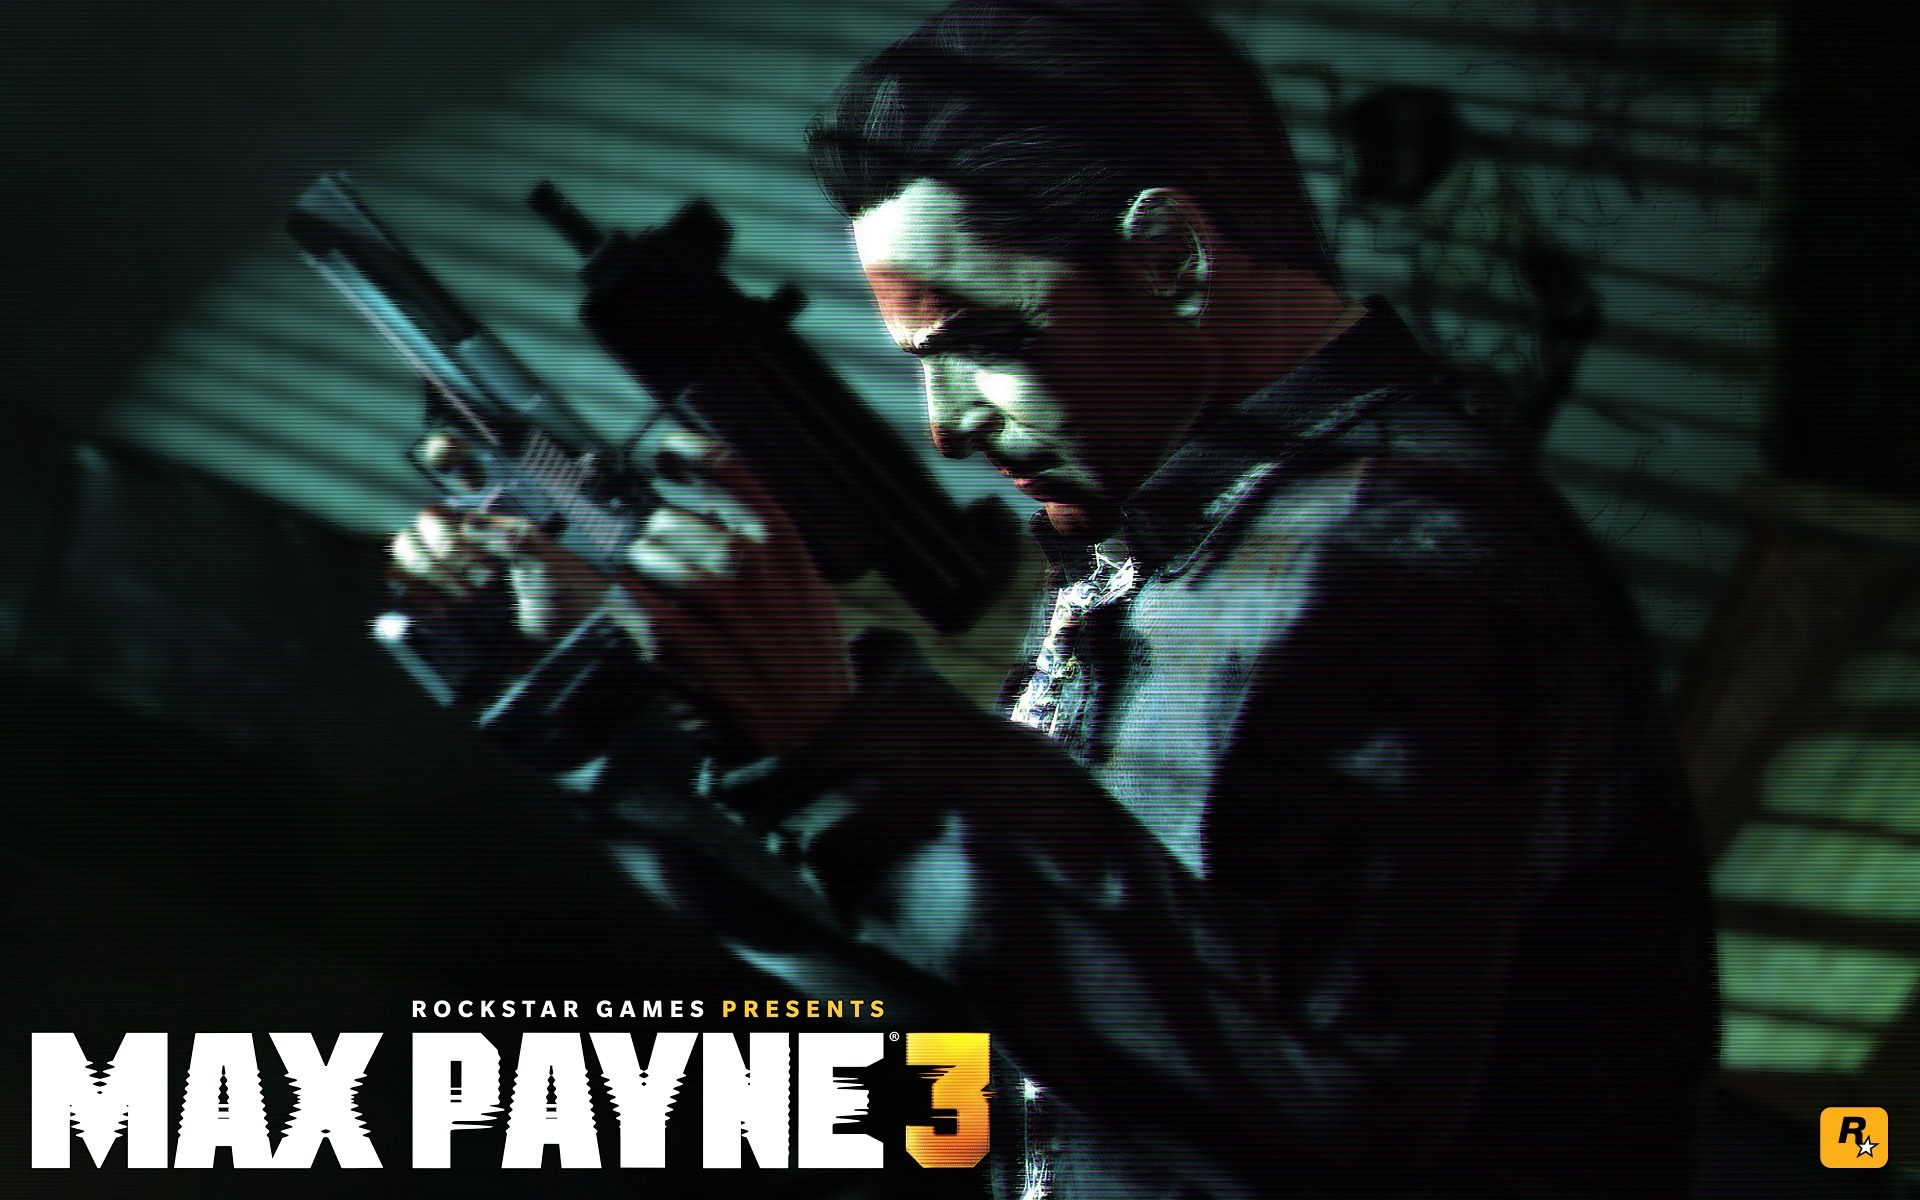 Max Payne 3 Game Hd Wallpaper 15 Preview 10wallpaper Com